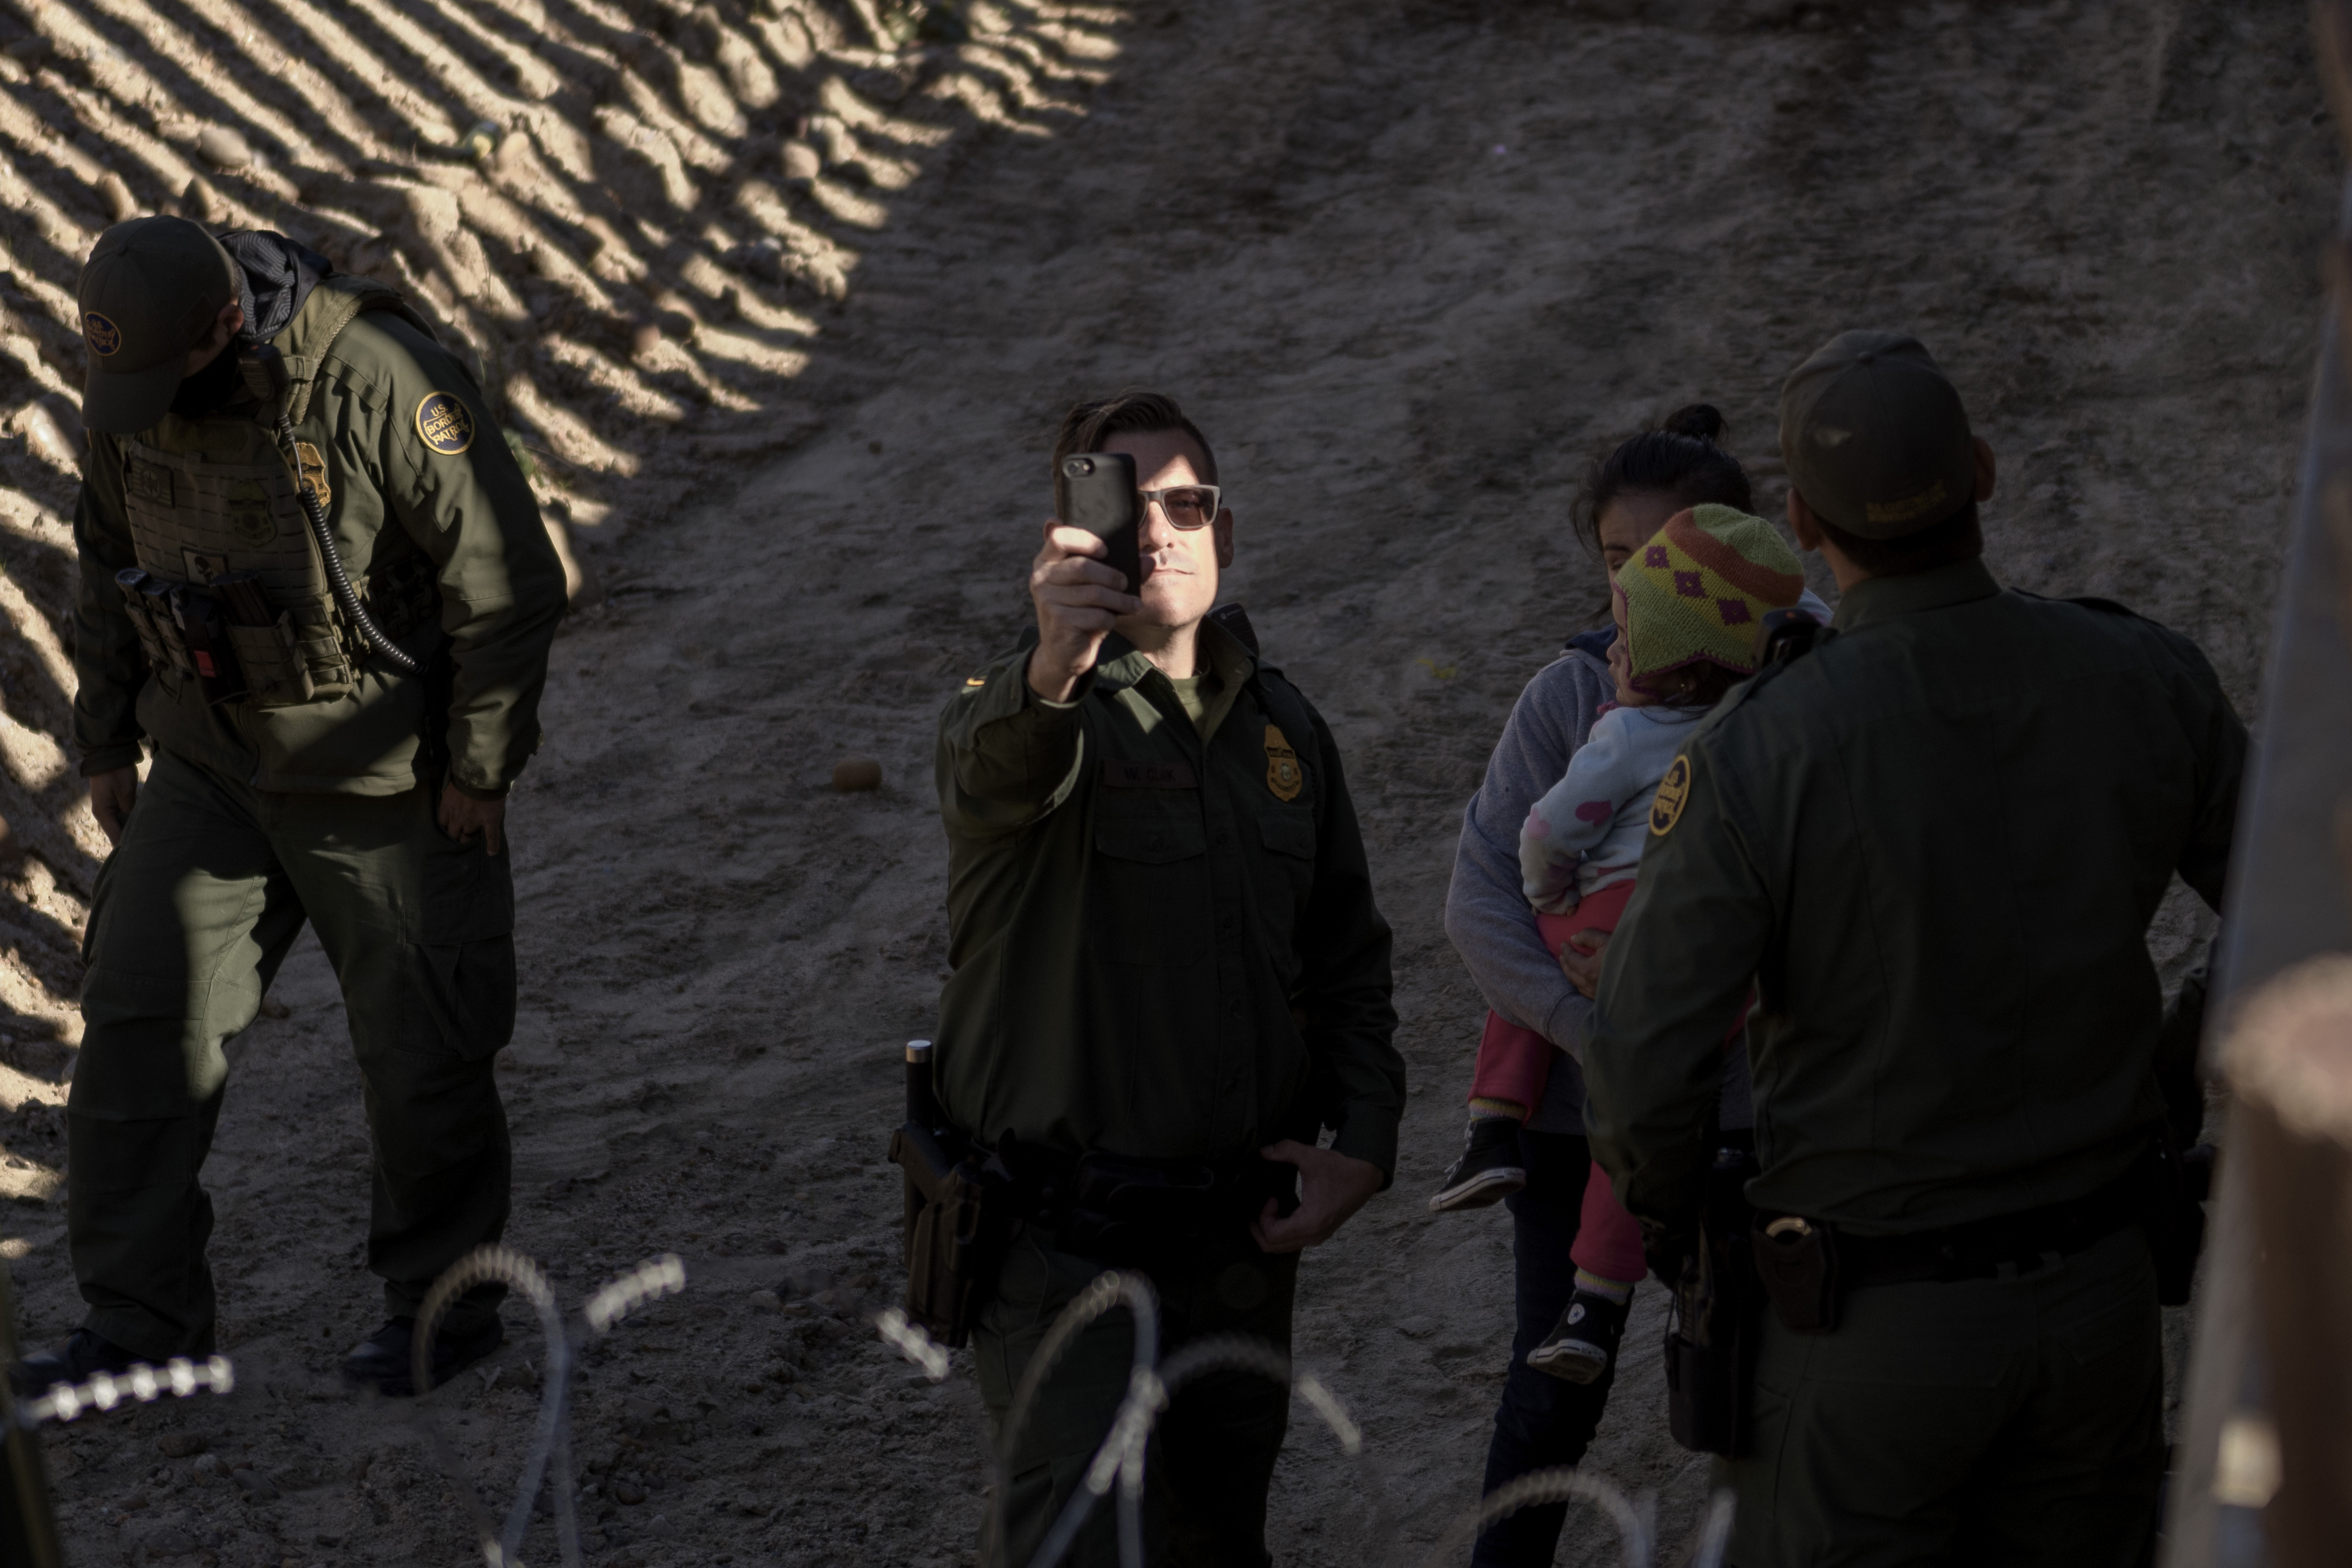 A Border Patrol officers uses his cell phone to take snapshots of the journalists after a Mexican migrant with her daughter jumped the border fence to get into the U.S. side to San Diego, Calif., from Tijuana, Mexico, Saturday, Dec. 29, 2018. Discouraged by the long wait to apply for asylum through official ports of entry, many migrants from recent caravans are choosing to cross the U.S. border wall and hand themselves in to border patrol agents. (AP Photo/Daniel Ochoa de Olza)